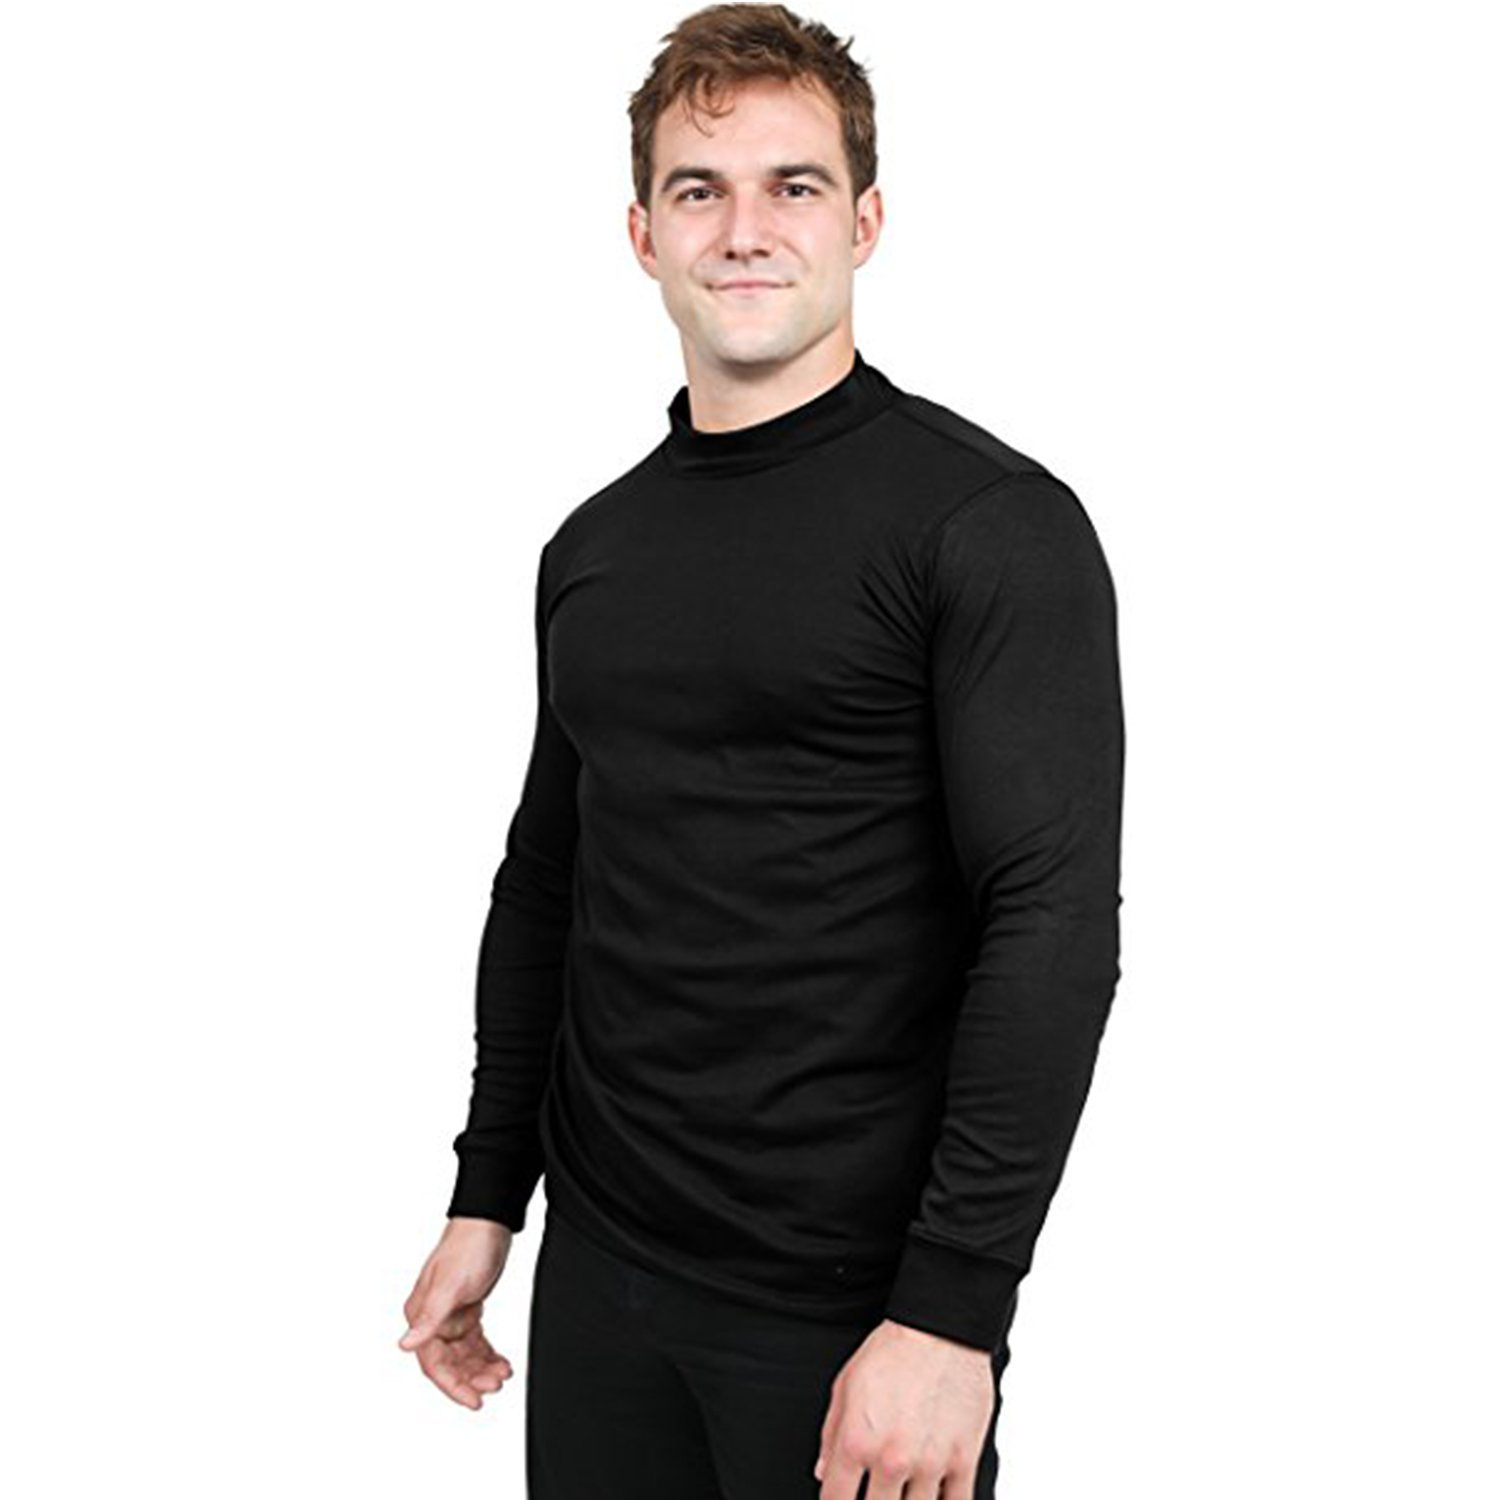 20eae249 Utopia Wear Premium Cotton Interlock Mock Turtleneck Men T-Shirt product  image